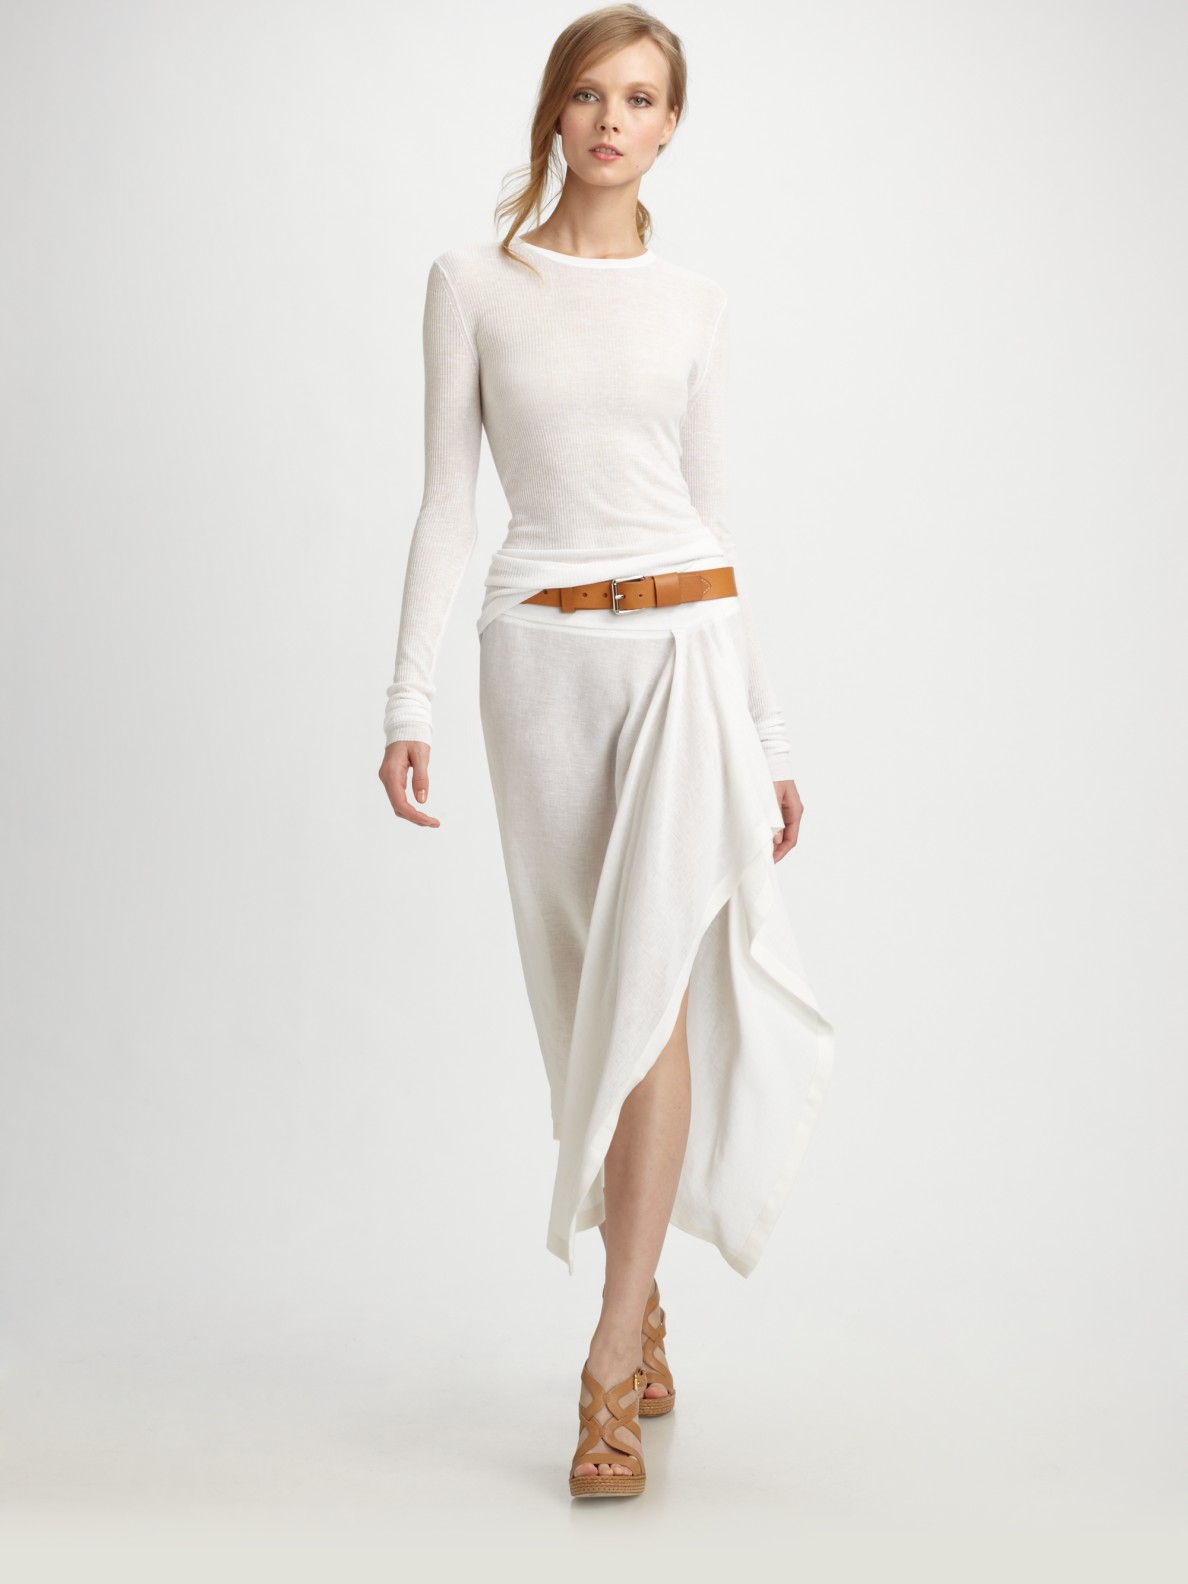 Michael Kors Linen Crepe Sarong Skirt In White Lyst